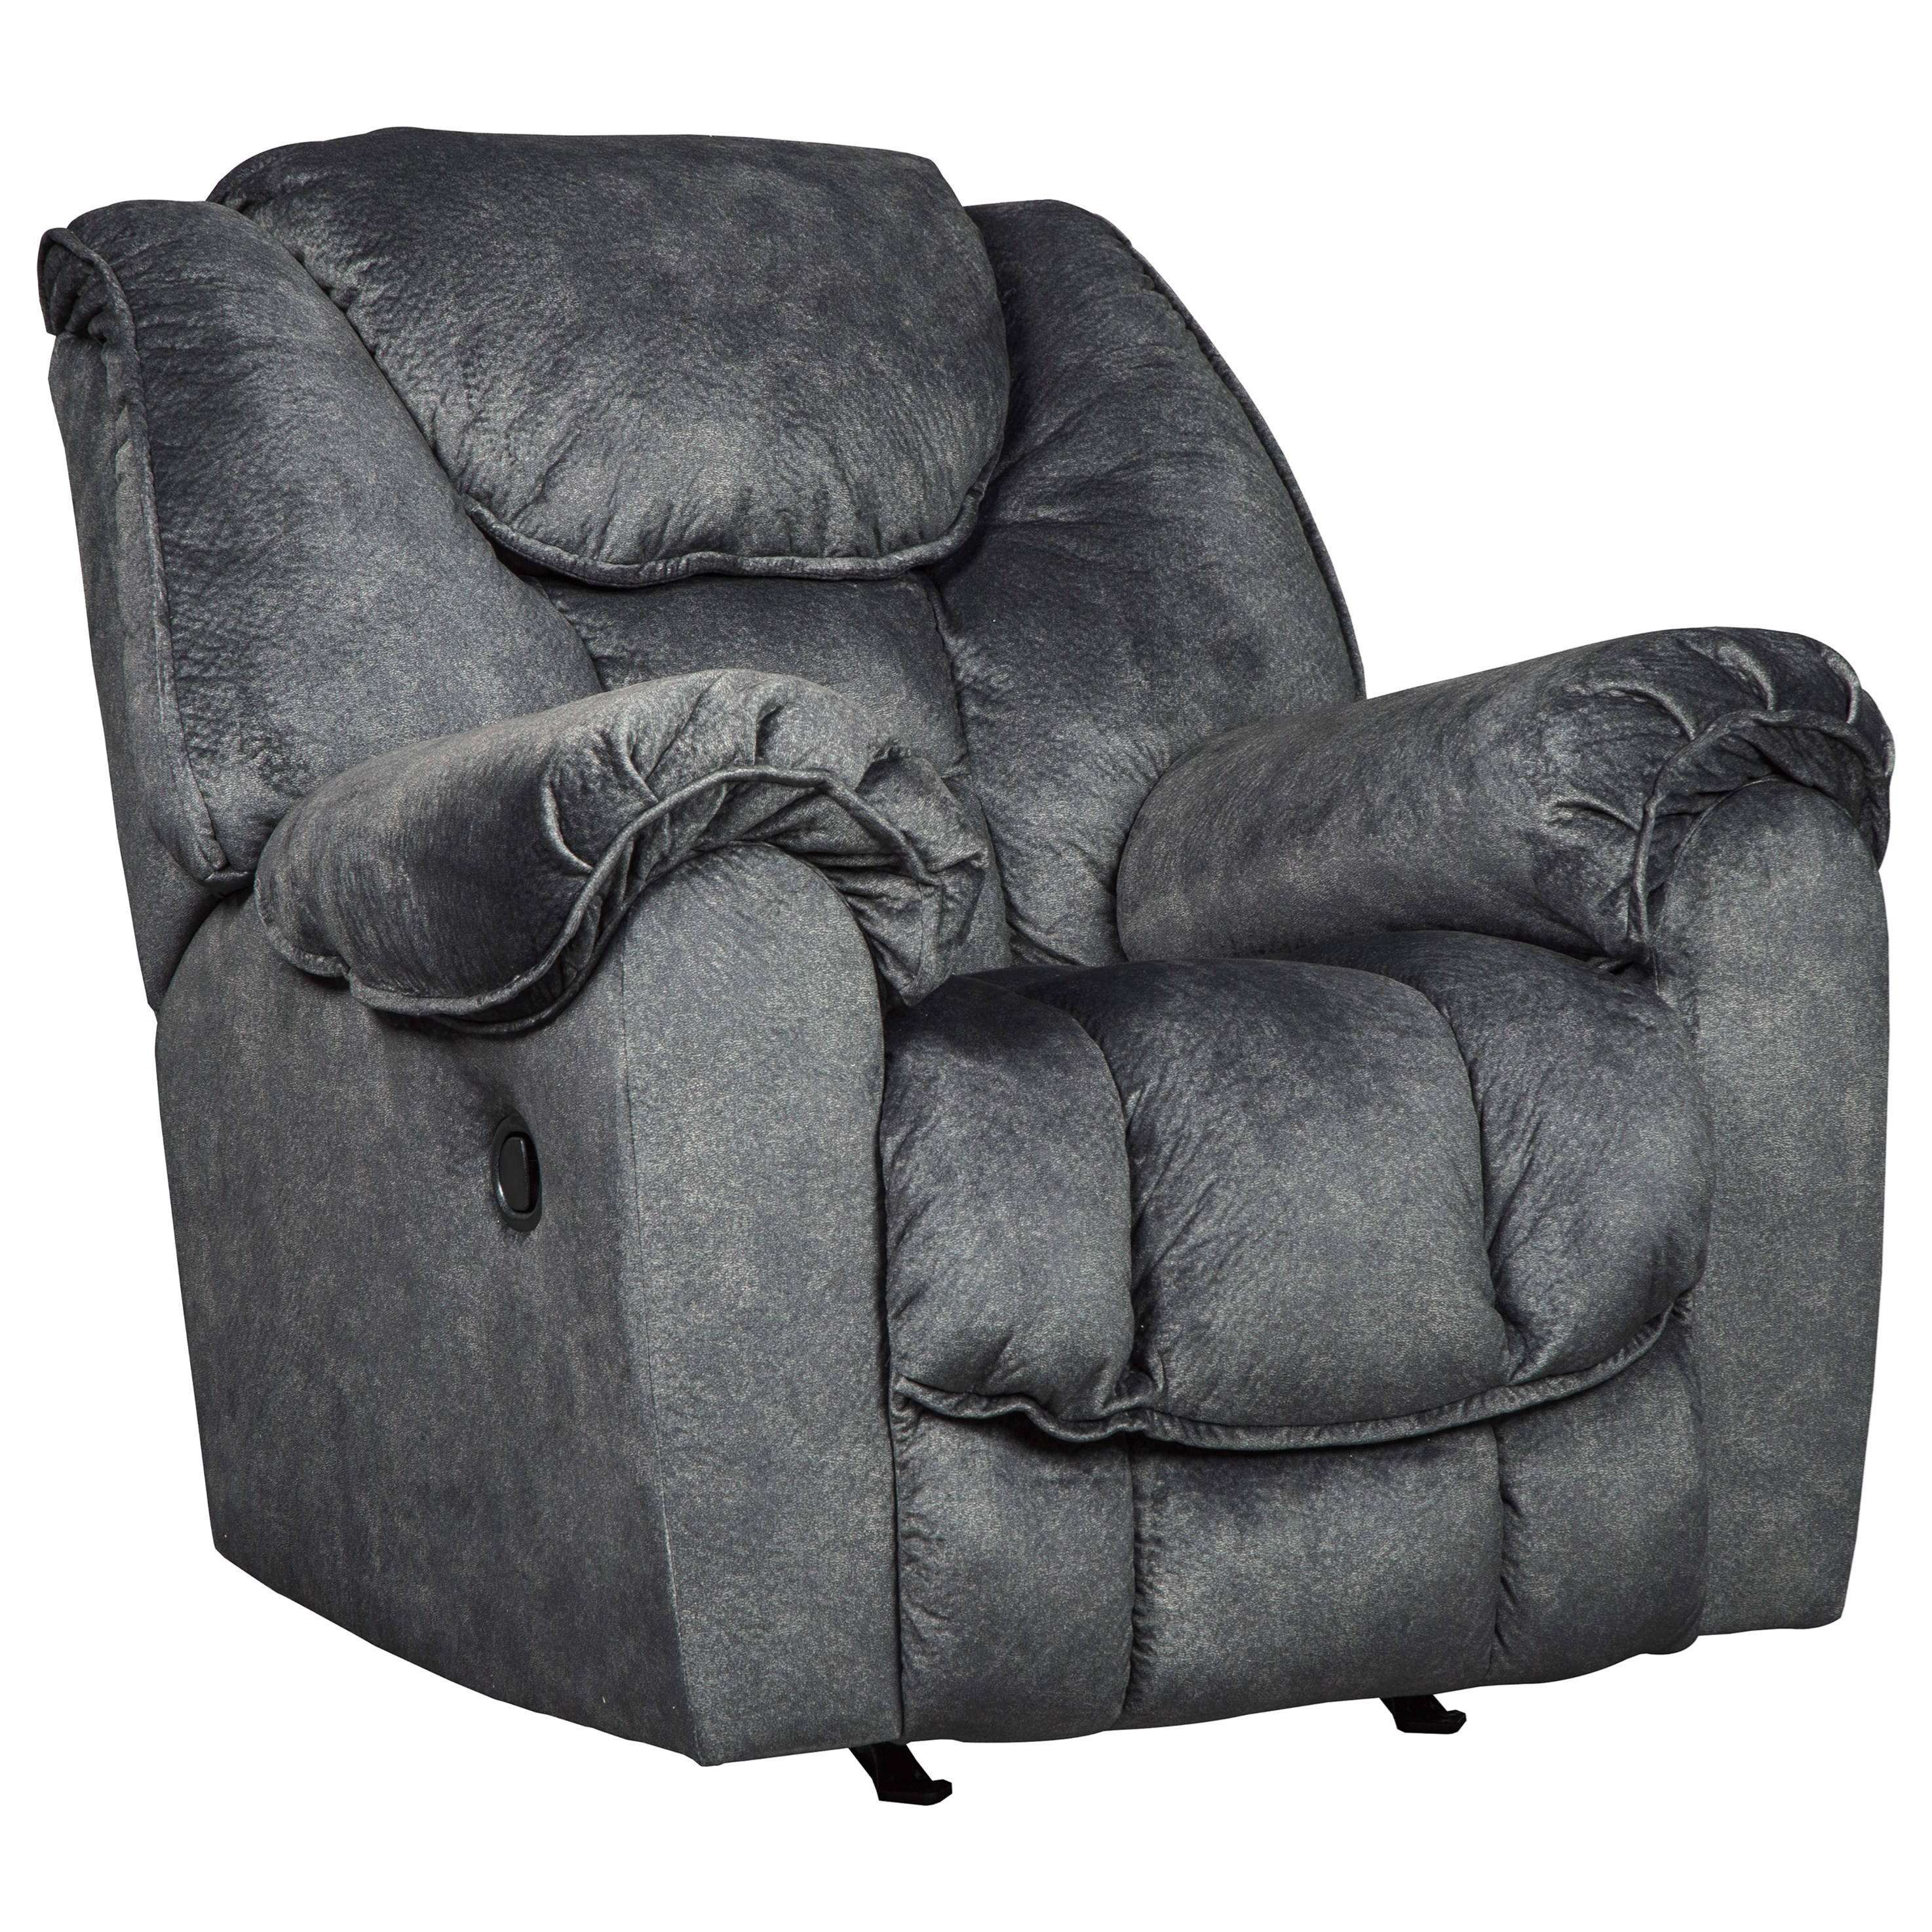 Capehorn Rocker Recliner by Ashley (Signature Design) at Johnny Janosik